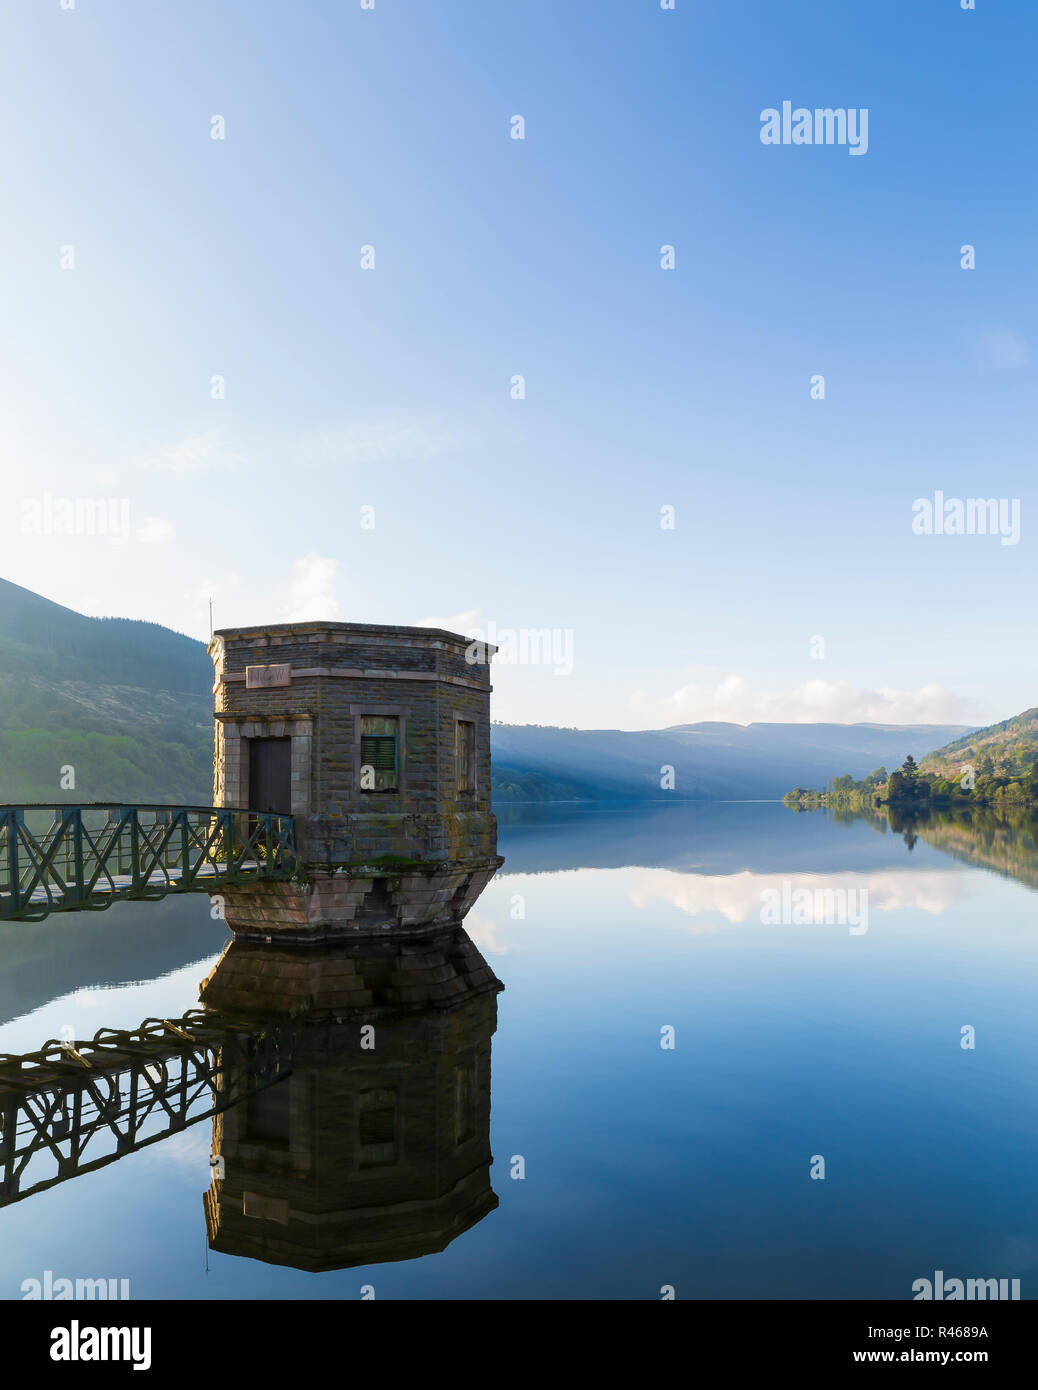 An image of a water tower on a misty October morning situated at Talybont On Usk reservoir, Wales, UK. - Stock Image